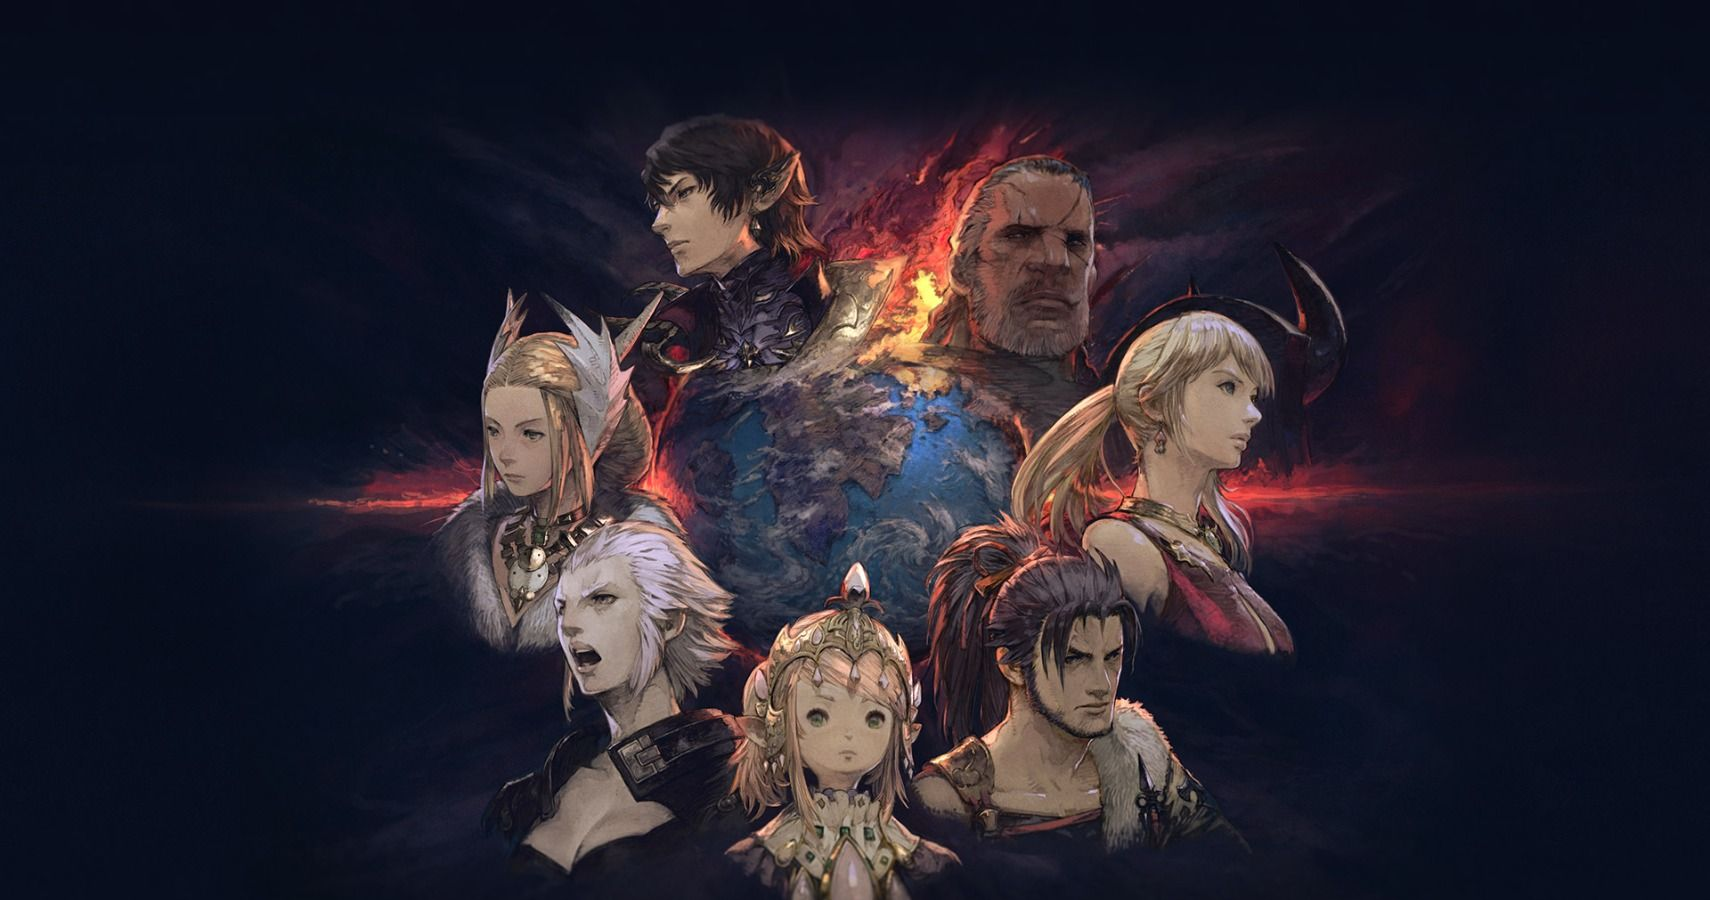 Everything You Need To Know About Final Fantasy 14 Patch 5.5: Death Unto Dawn